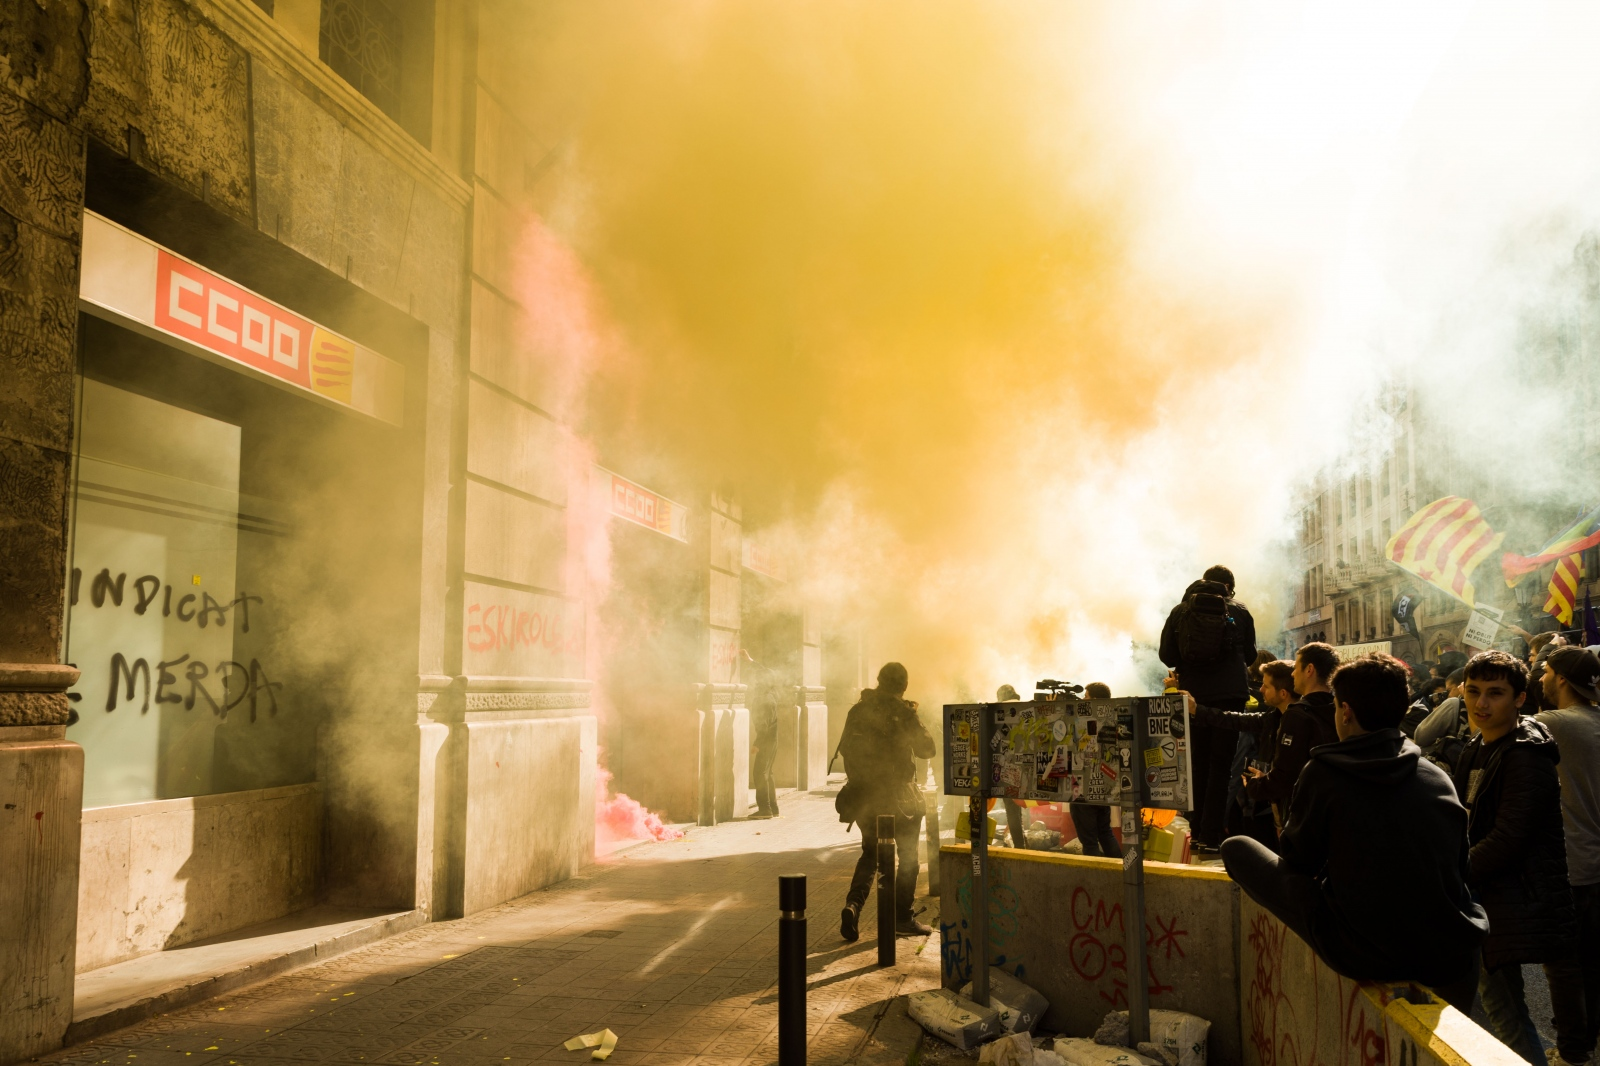 """Some protesters at the general strike in Barcelona threw paint, eggs and smoke bombs against the building of Spain's biggest labor union federation, Comisiones Obreras (CCOO). The spray paint on its walls and doors translates to """"union of shit"""" (sindicat de merda) and """"blackleg"""" (eskirols). The strike had been convoked by the separatist CSC union and protested the trial of Catalonia's secessionist leaders, CCOO jointly with other unions had not supported it. Barcelona, February 16, 2019."""